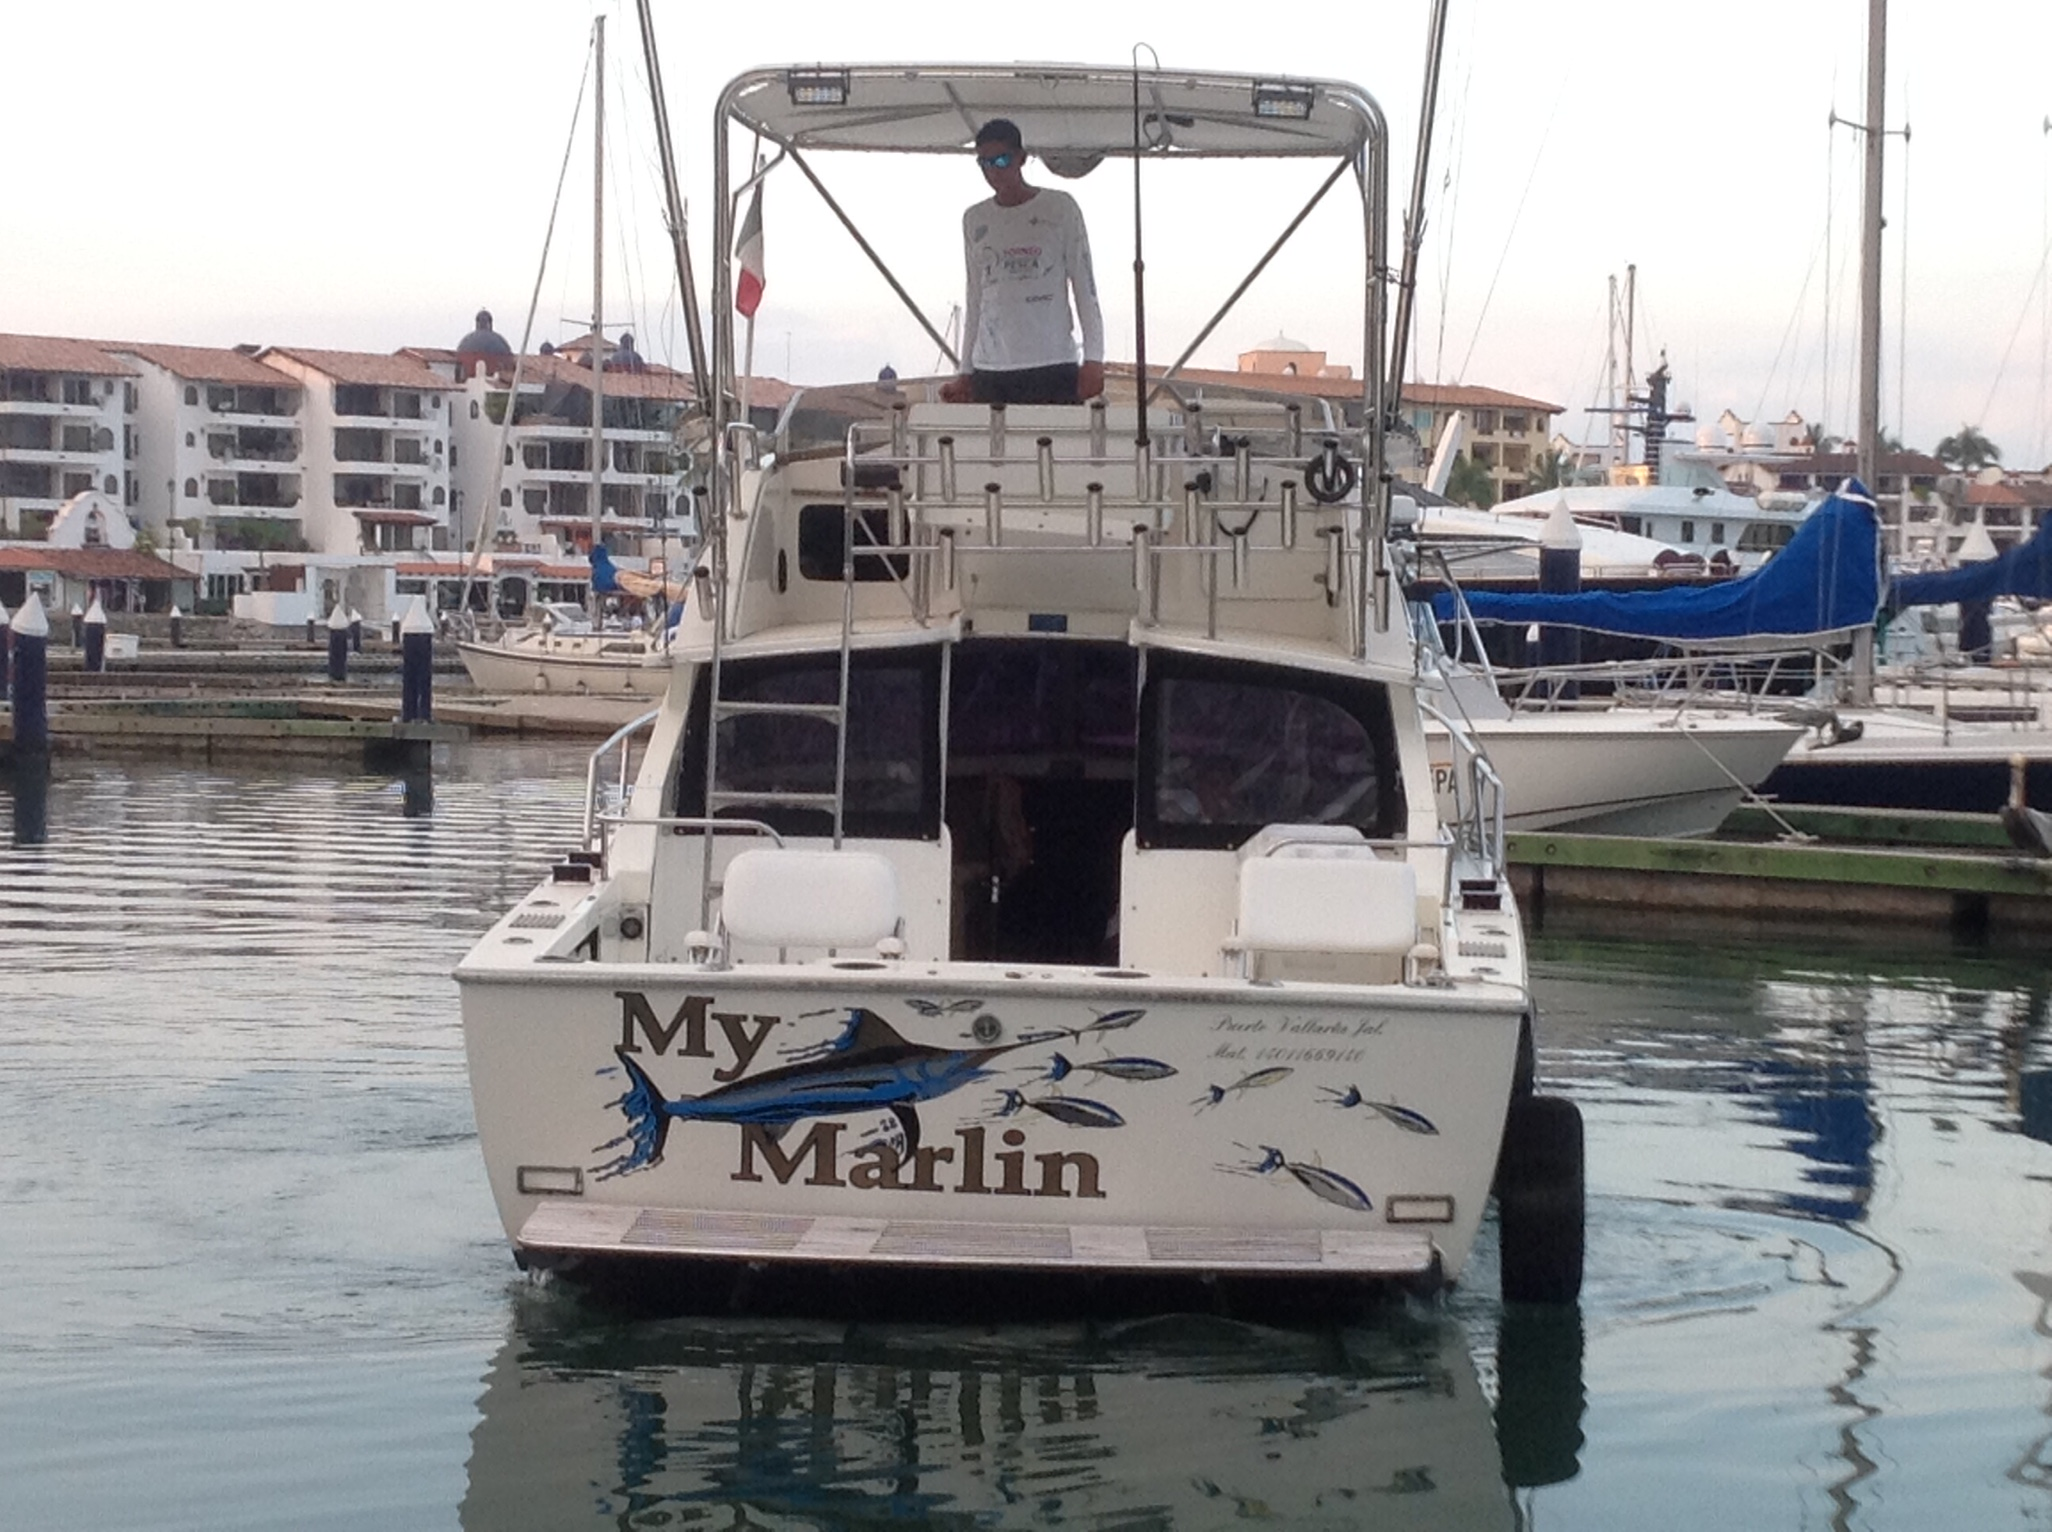 The My Marlin fishing charter